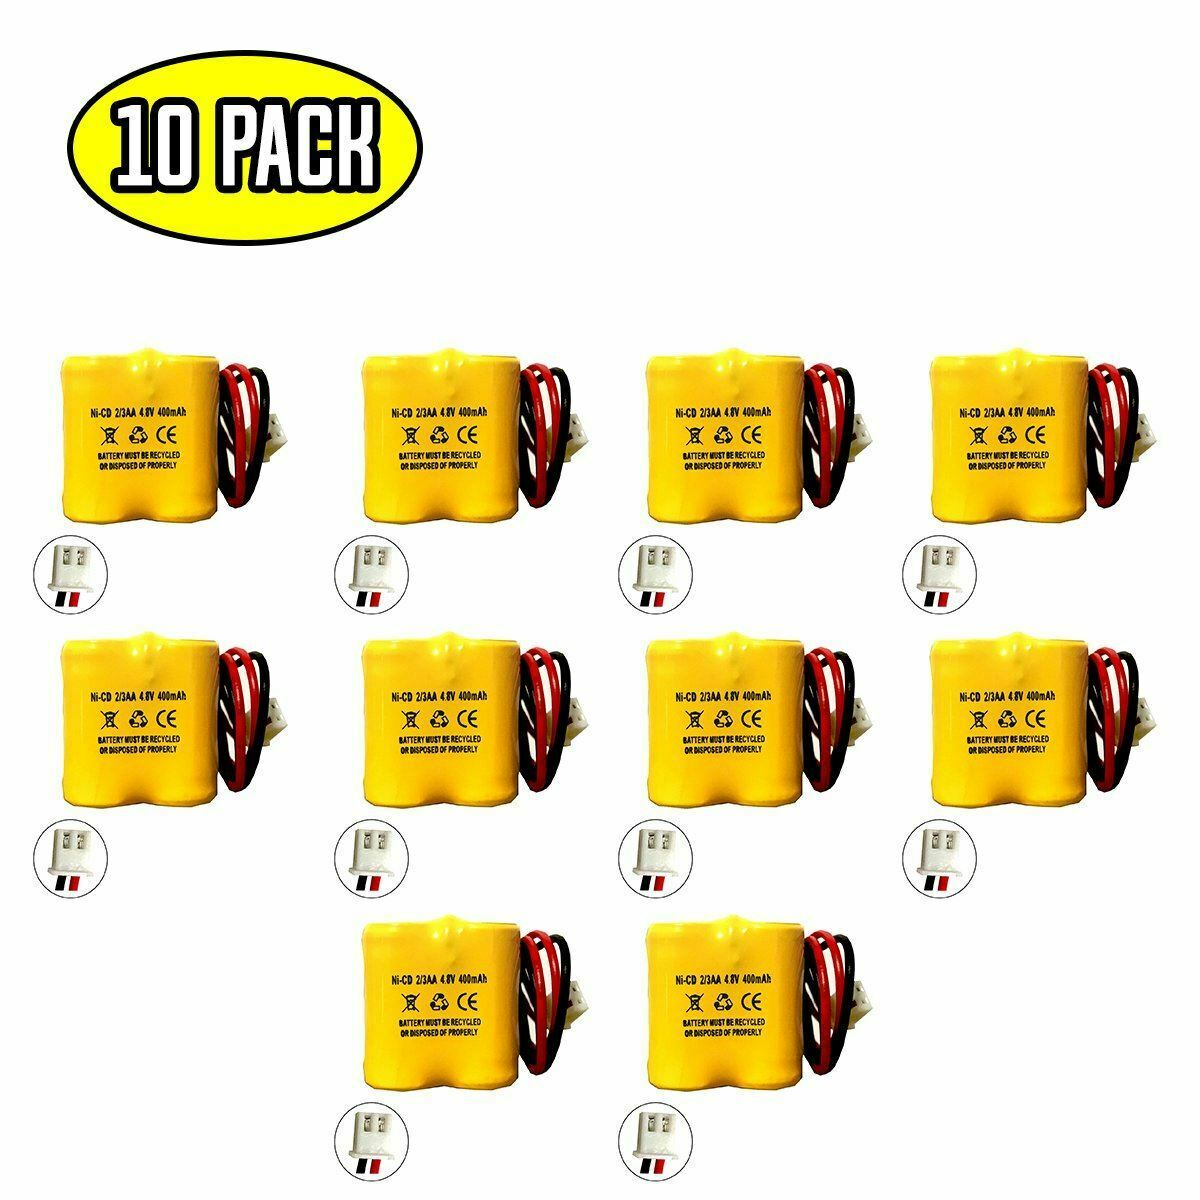 (10 pack) 4.8v 400mAh Ni-CD Battery Pack Replacement for Emergency / Exit Light